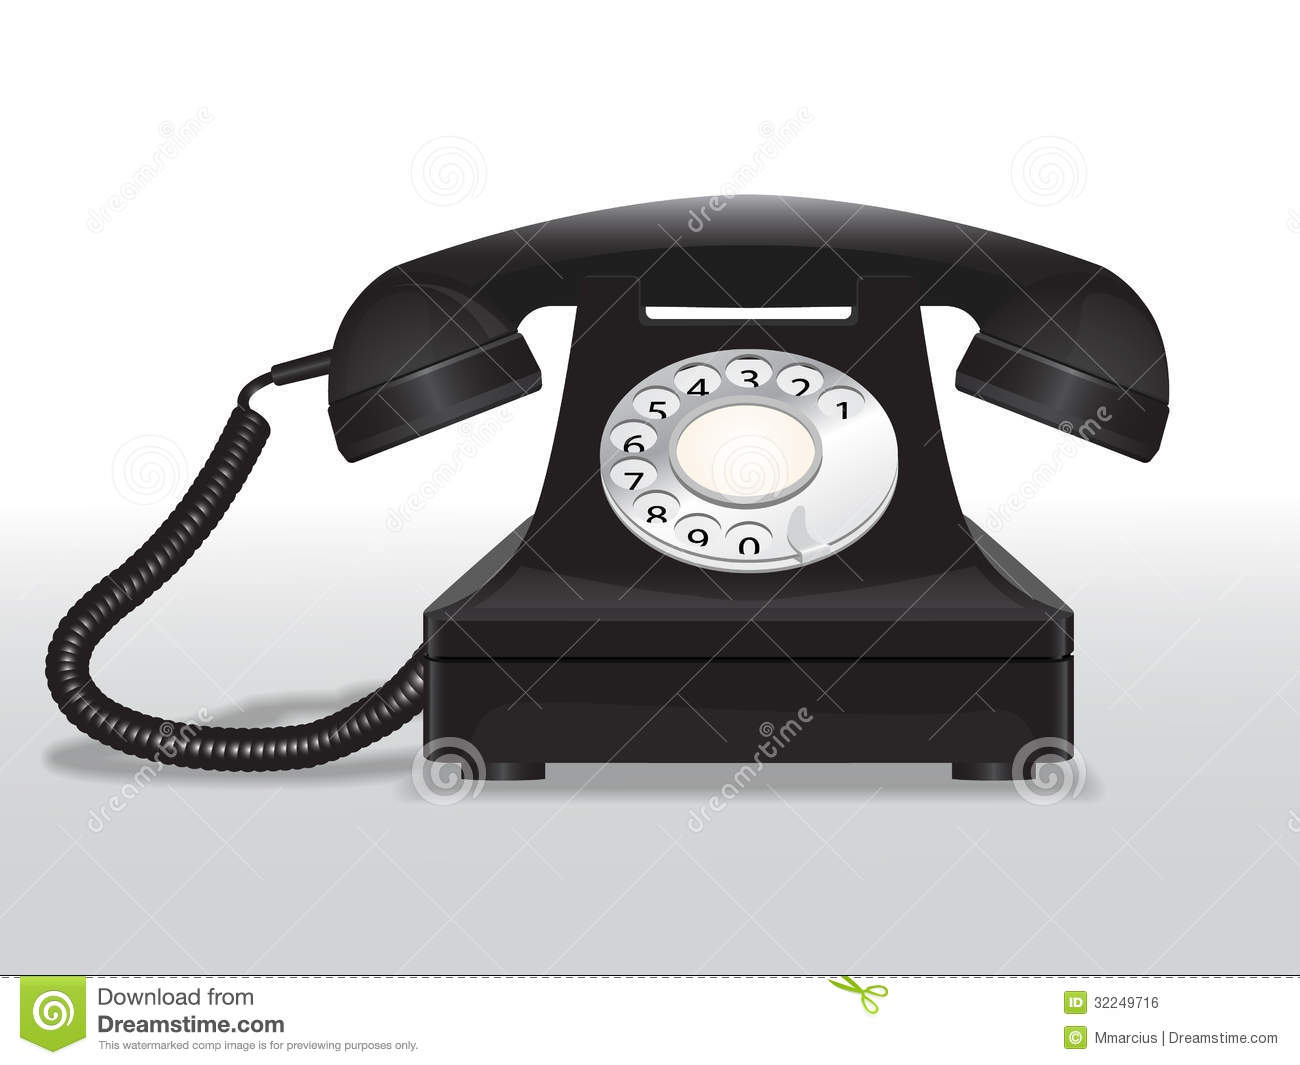 Vintage telephoneVintage Telephone Illustration